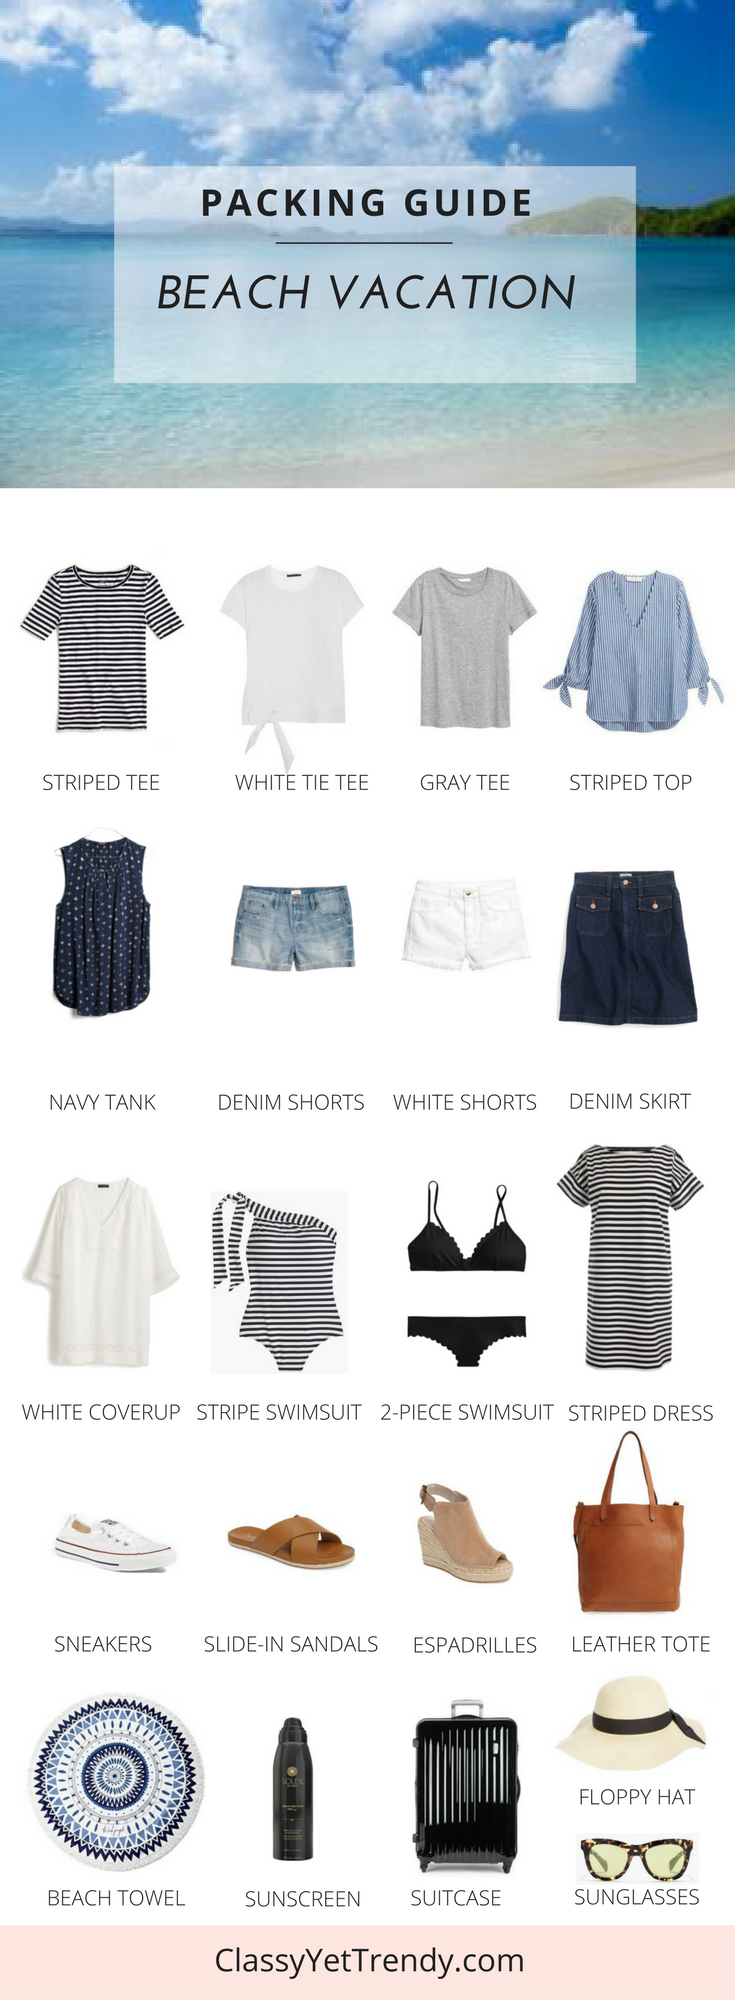 Packing List Guide - BEACH VACATION